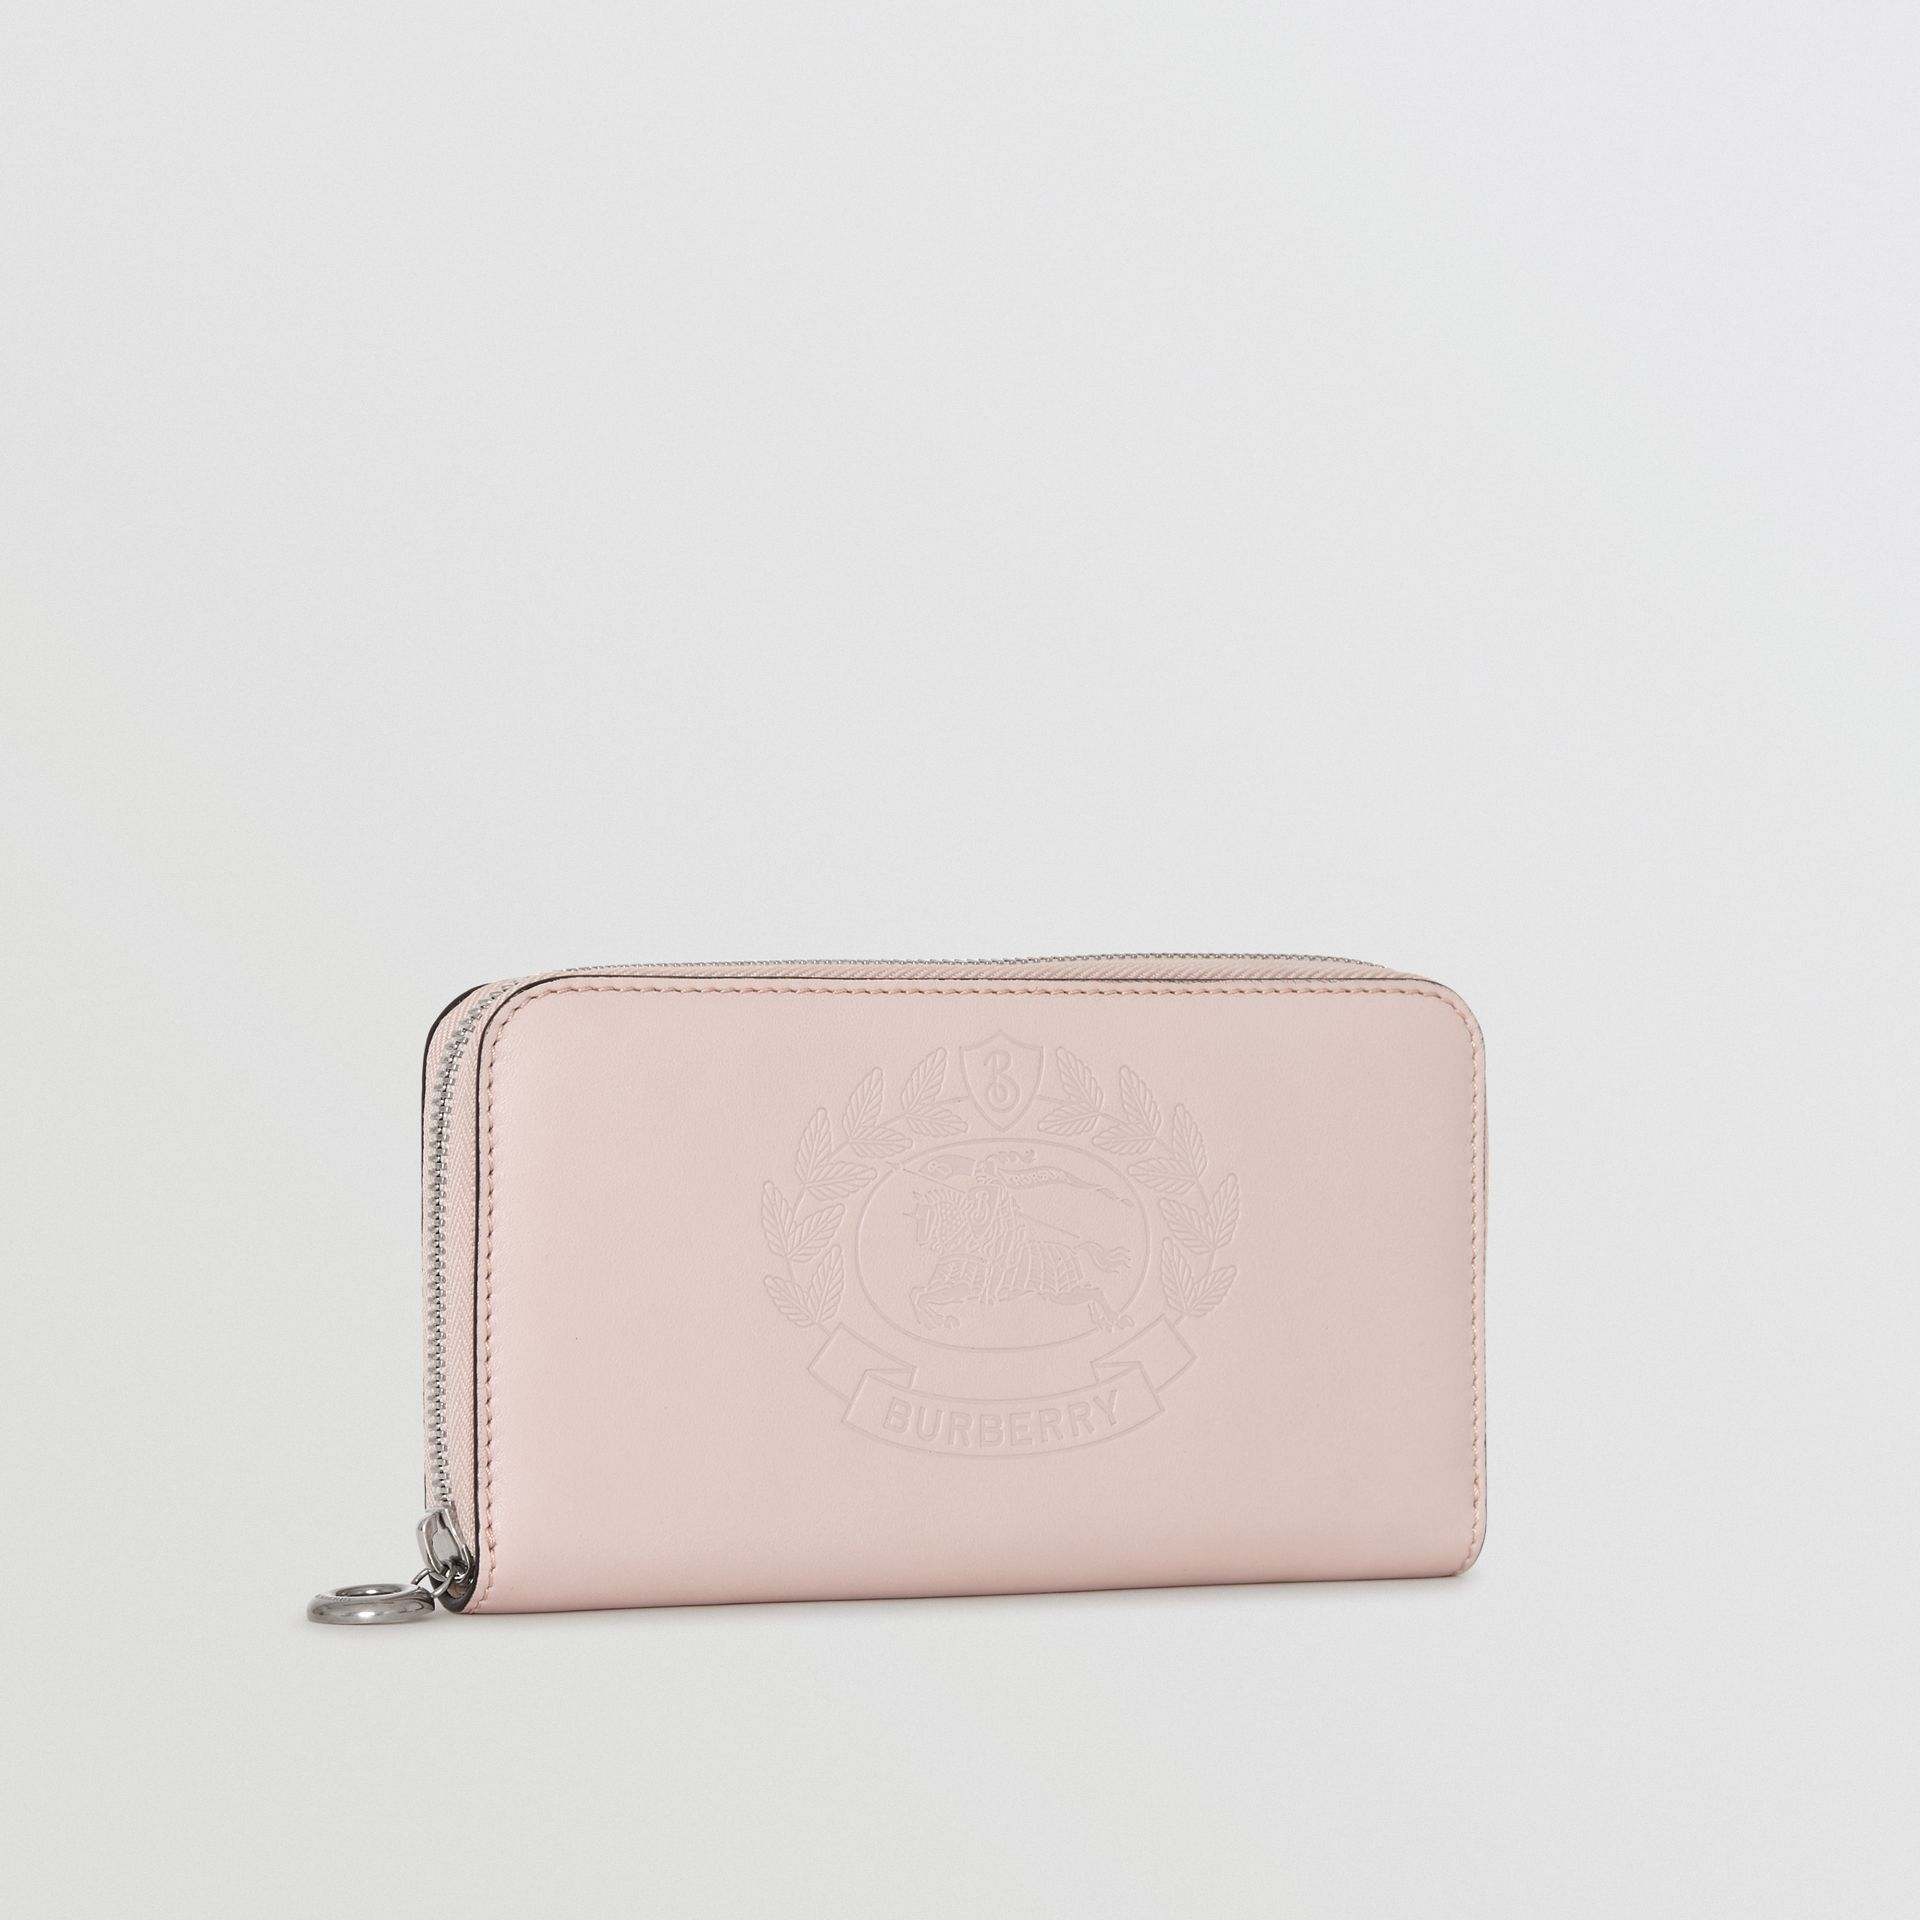 Embossed Crest Two-tone Leather Ziparound Wallet in Chalk Pink - Women | Burberry United States - gallery image 3